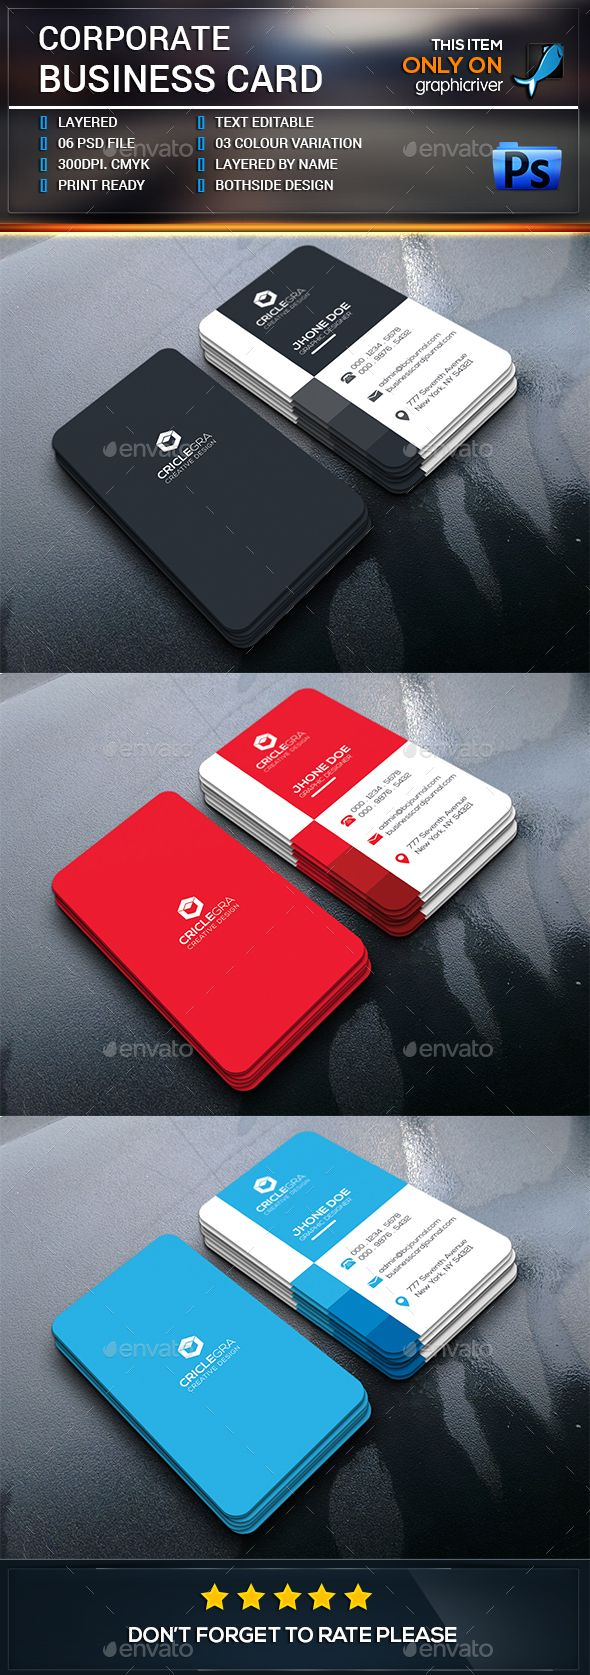 47 Best Corporate Business Card Images On Pinterest Business Card